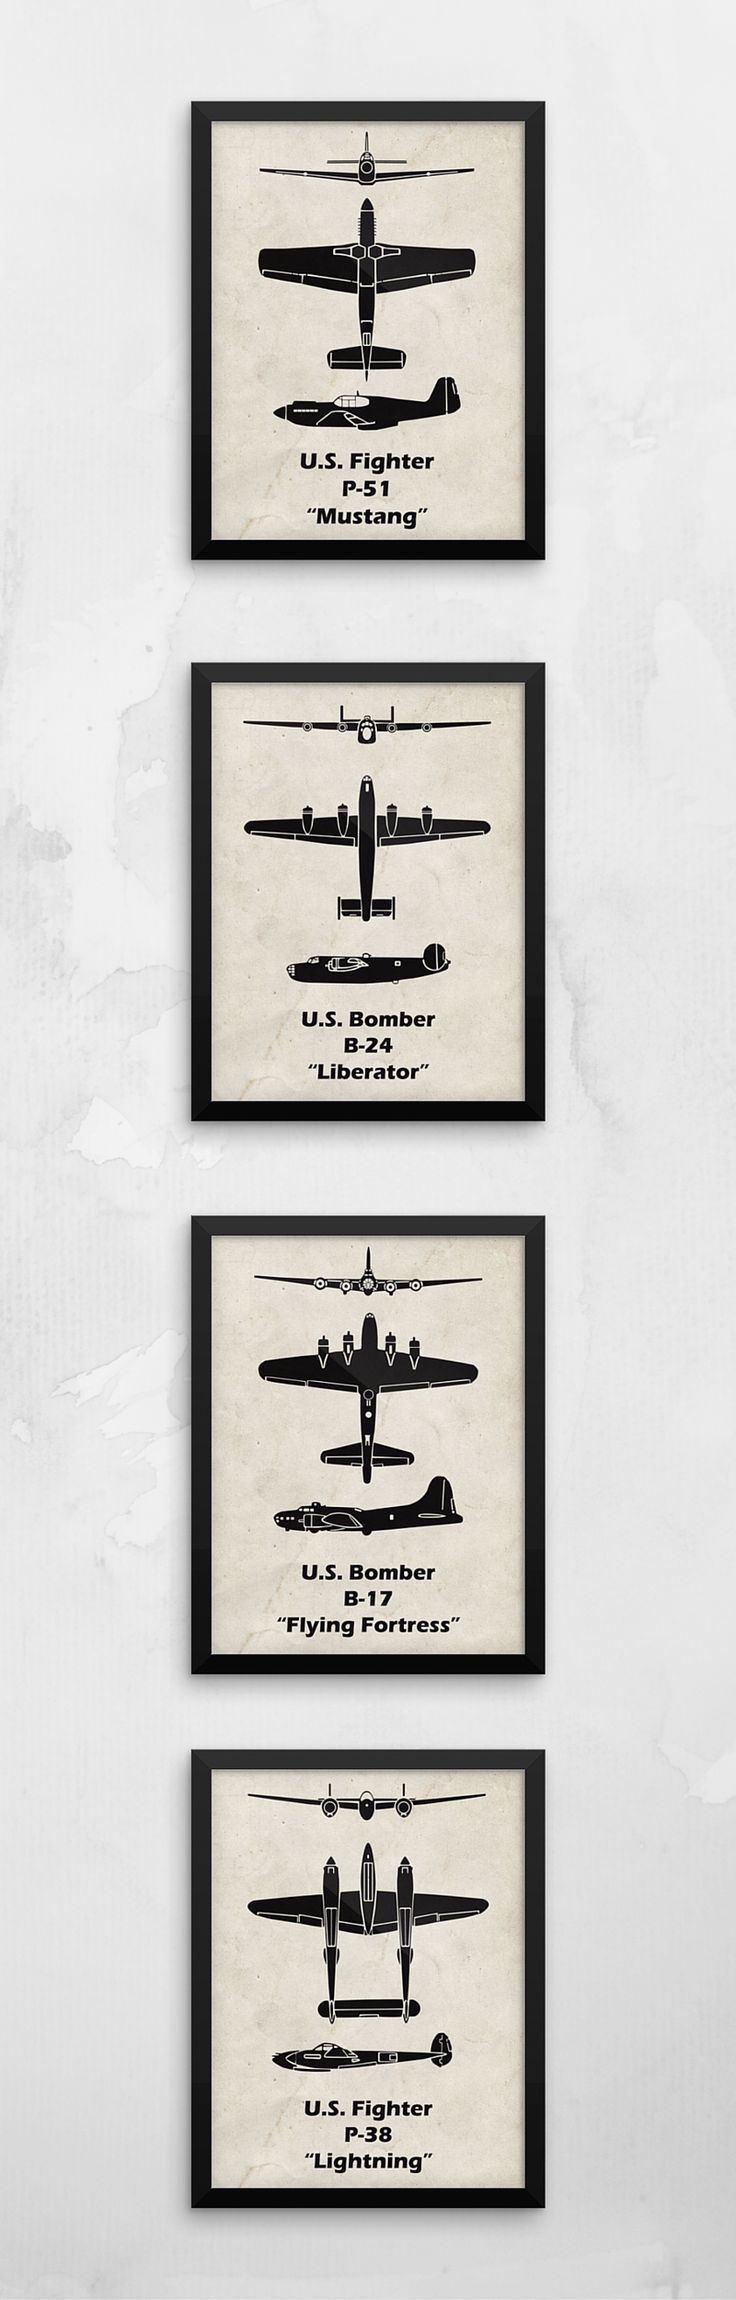 I love these Airplane prints!!! They look like the spotter cards from WWII. I'd love to hang some up in my nursery.